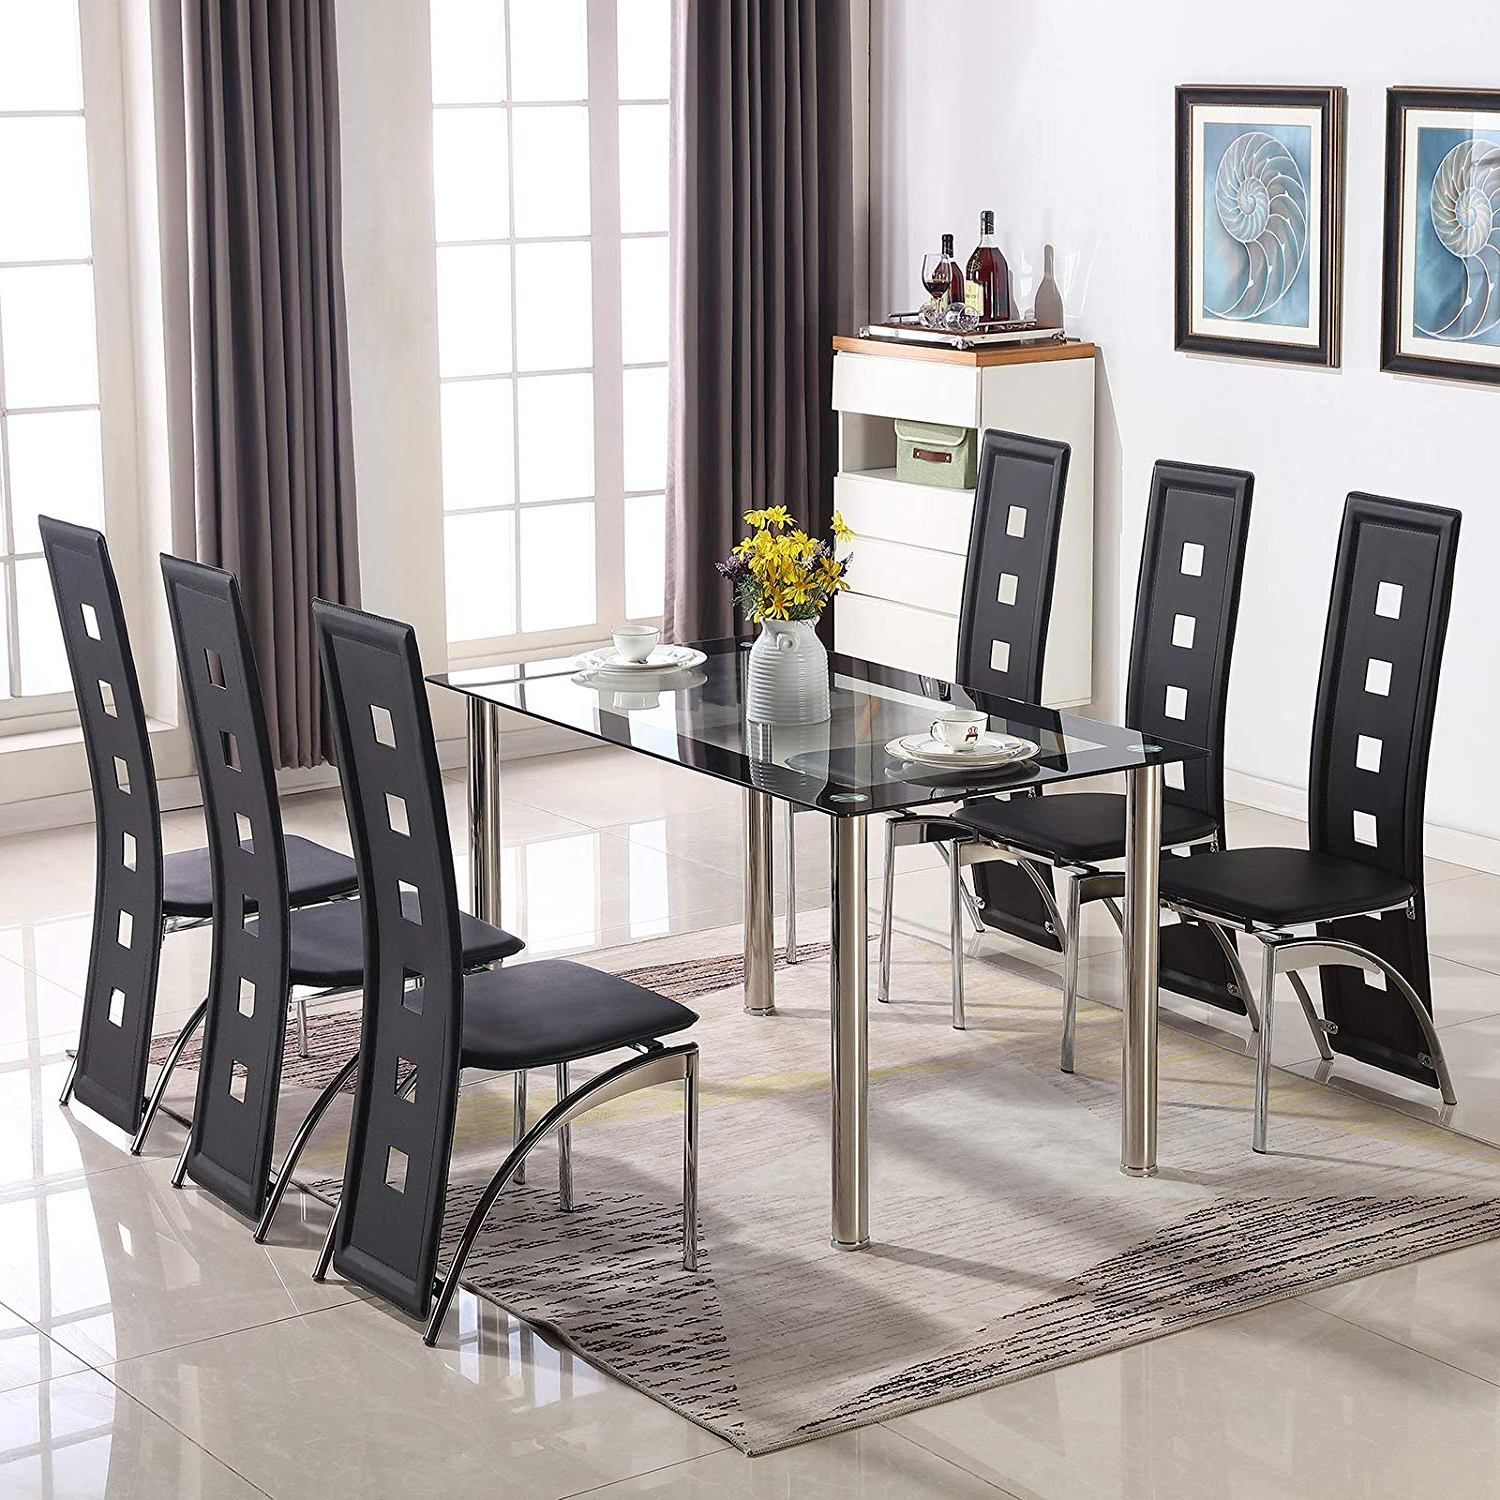 Glass Dining Tables With Metal Legs Inside Newest Kitchen & Dining Tables Modern Black&clear Tempered Glass (View 21 of 30)